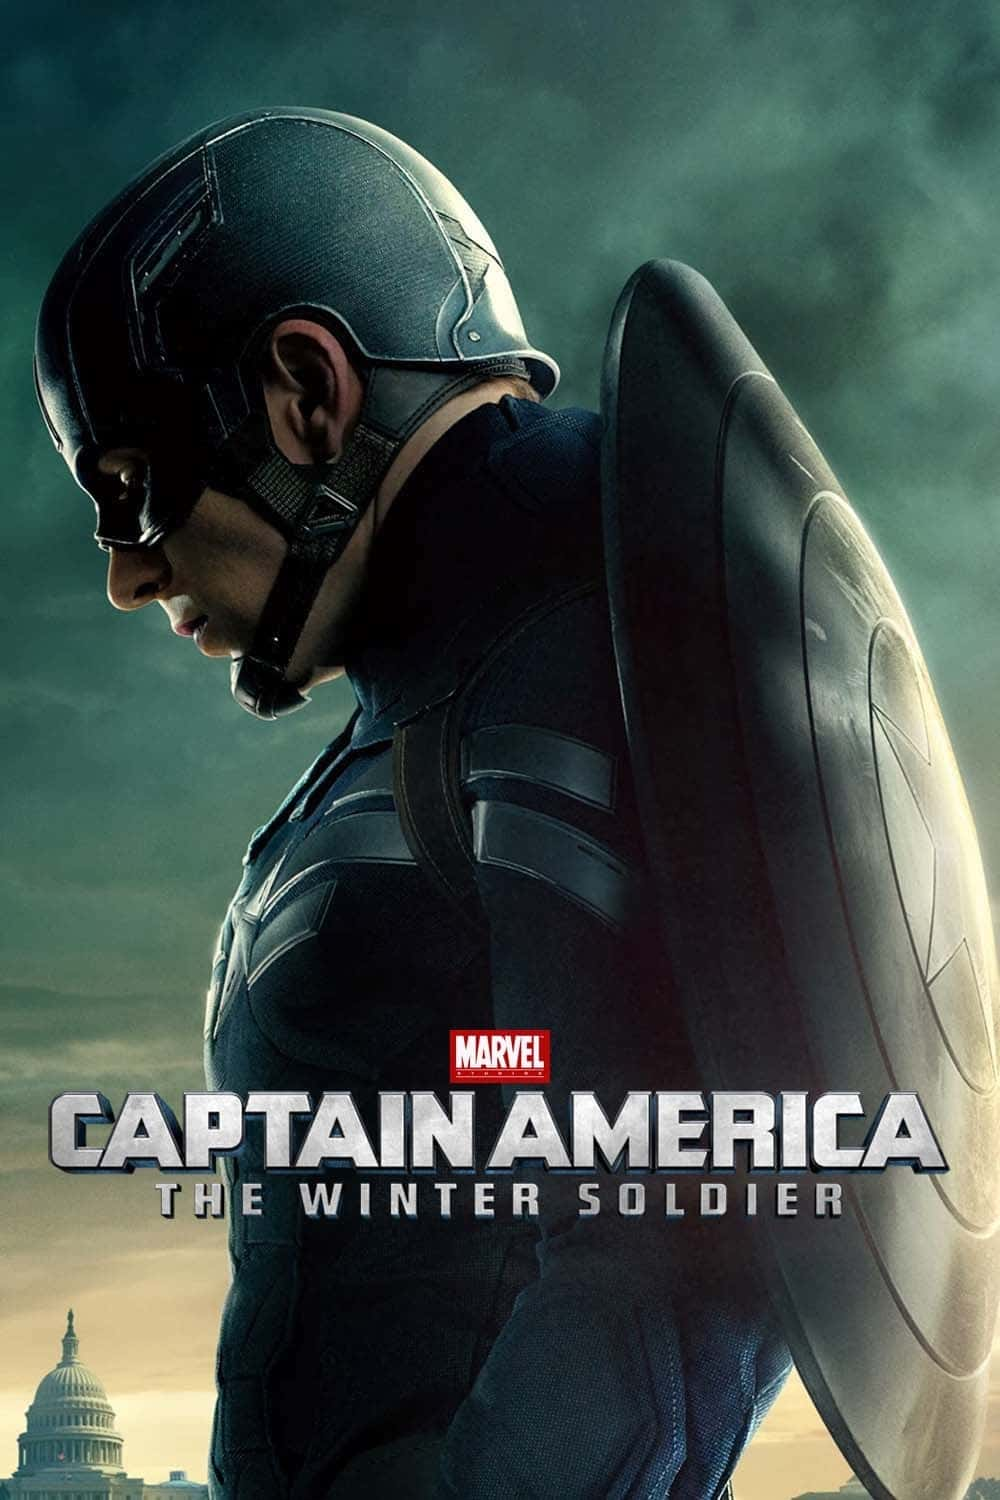 captain america poster high quality HD printable wallpapers steve rogers captain america 2014 the winter soldier